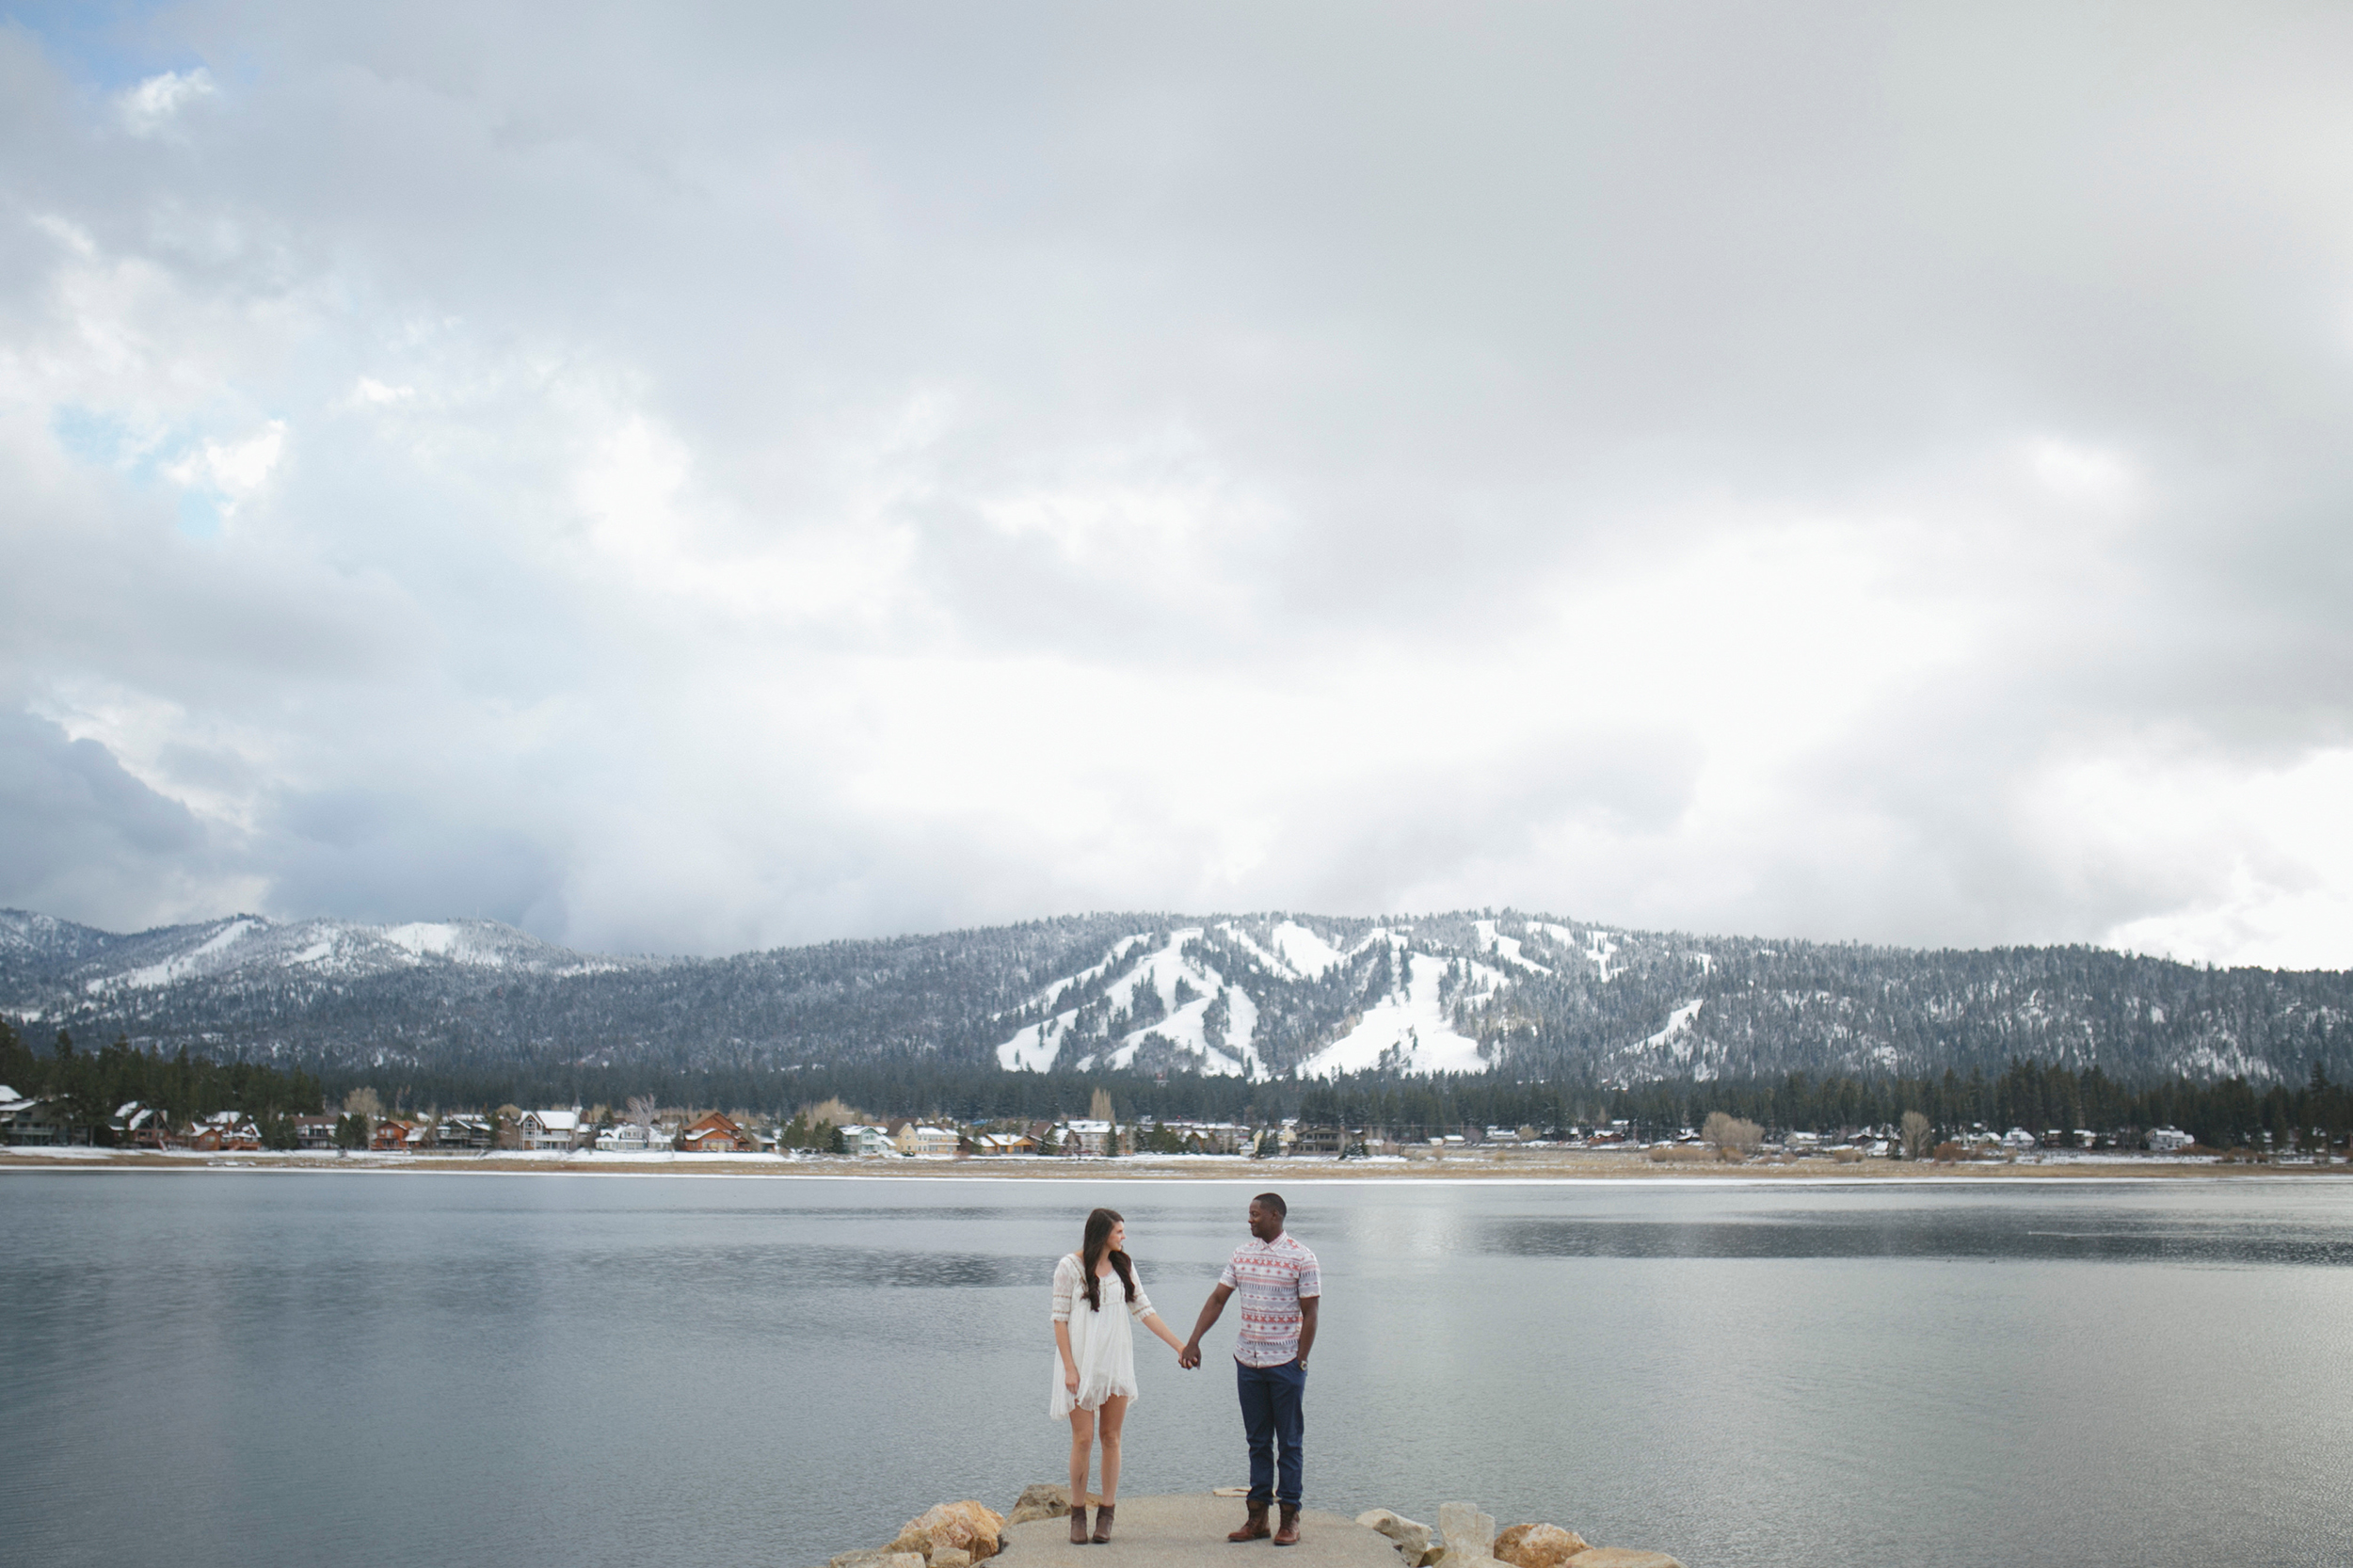 Colby-and-Jess-Adventure-Engagement-Photography-Big-Bear-California188.jpg